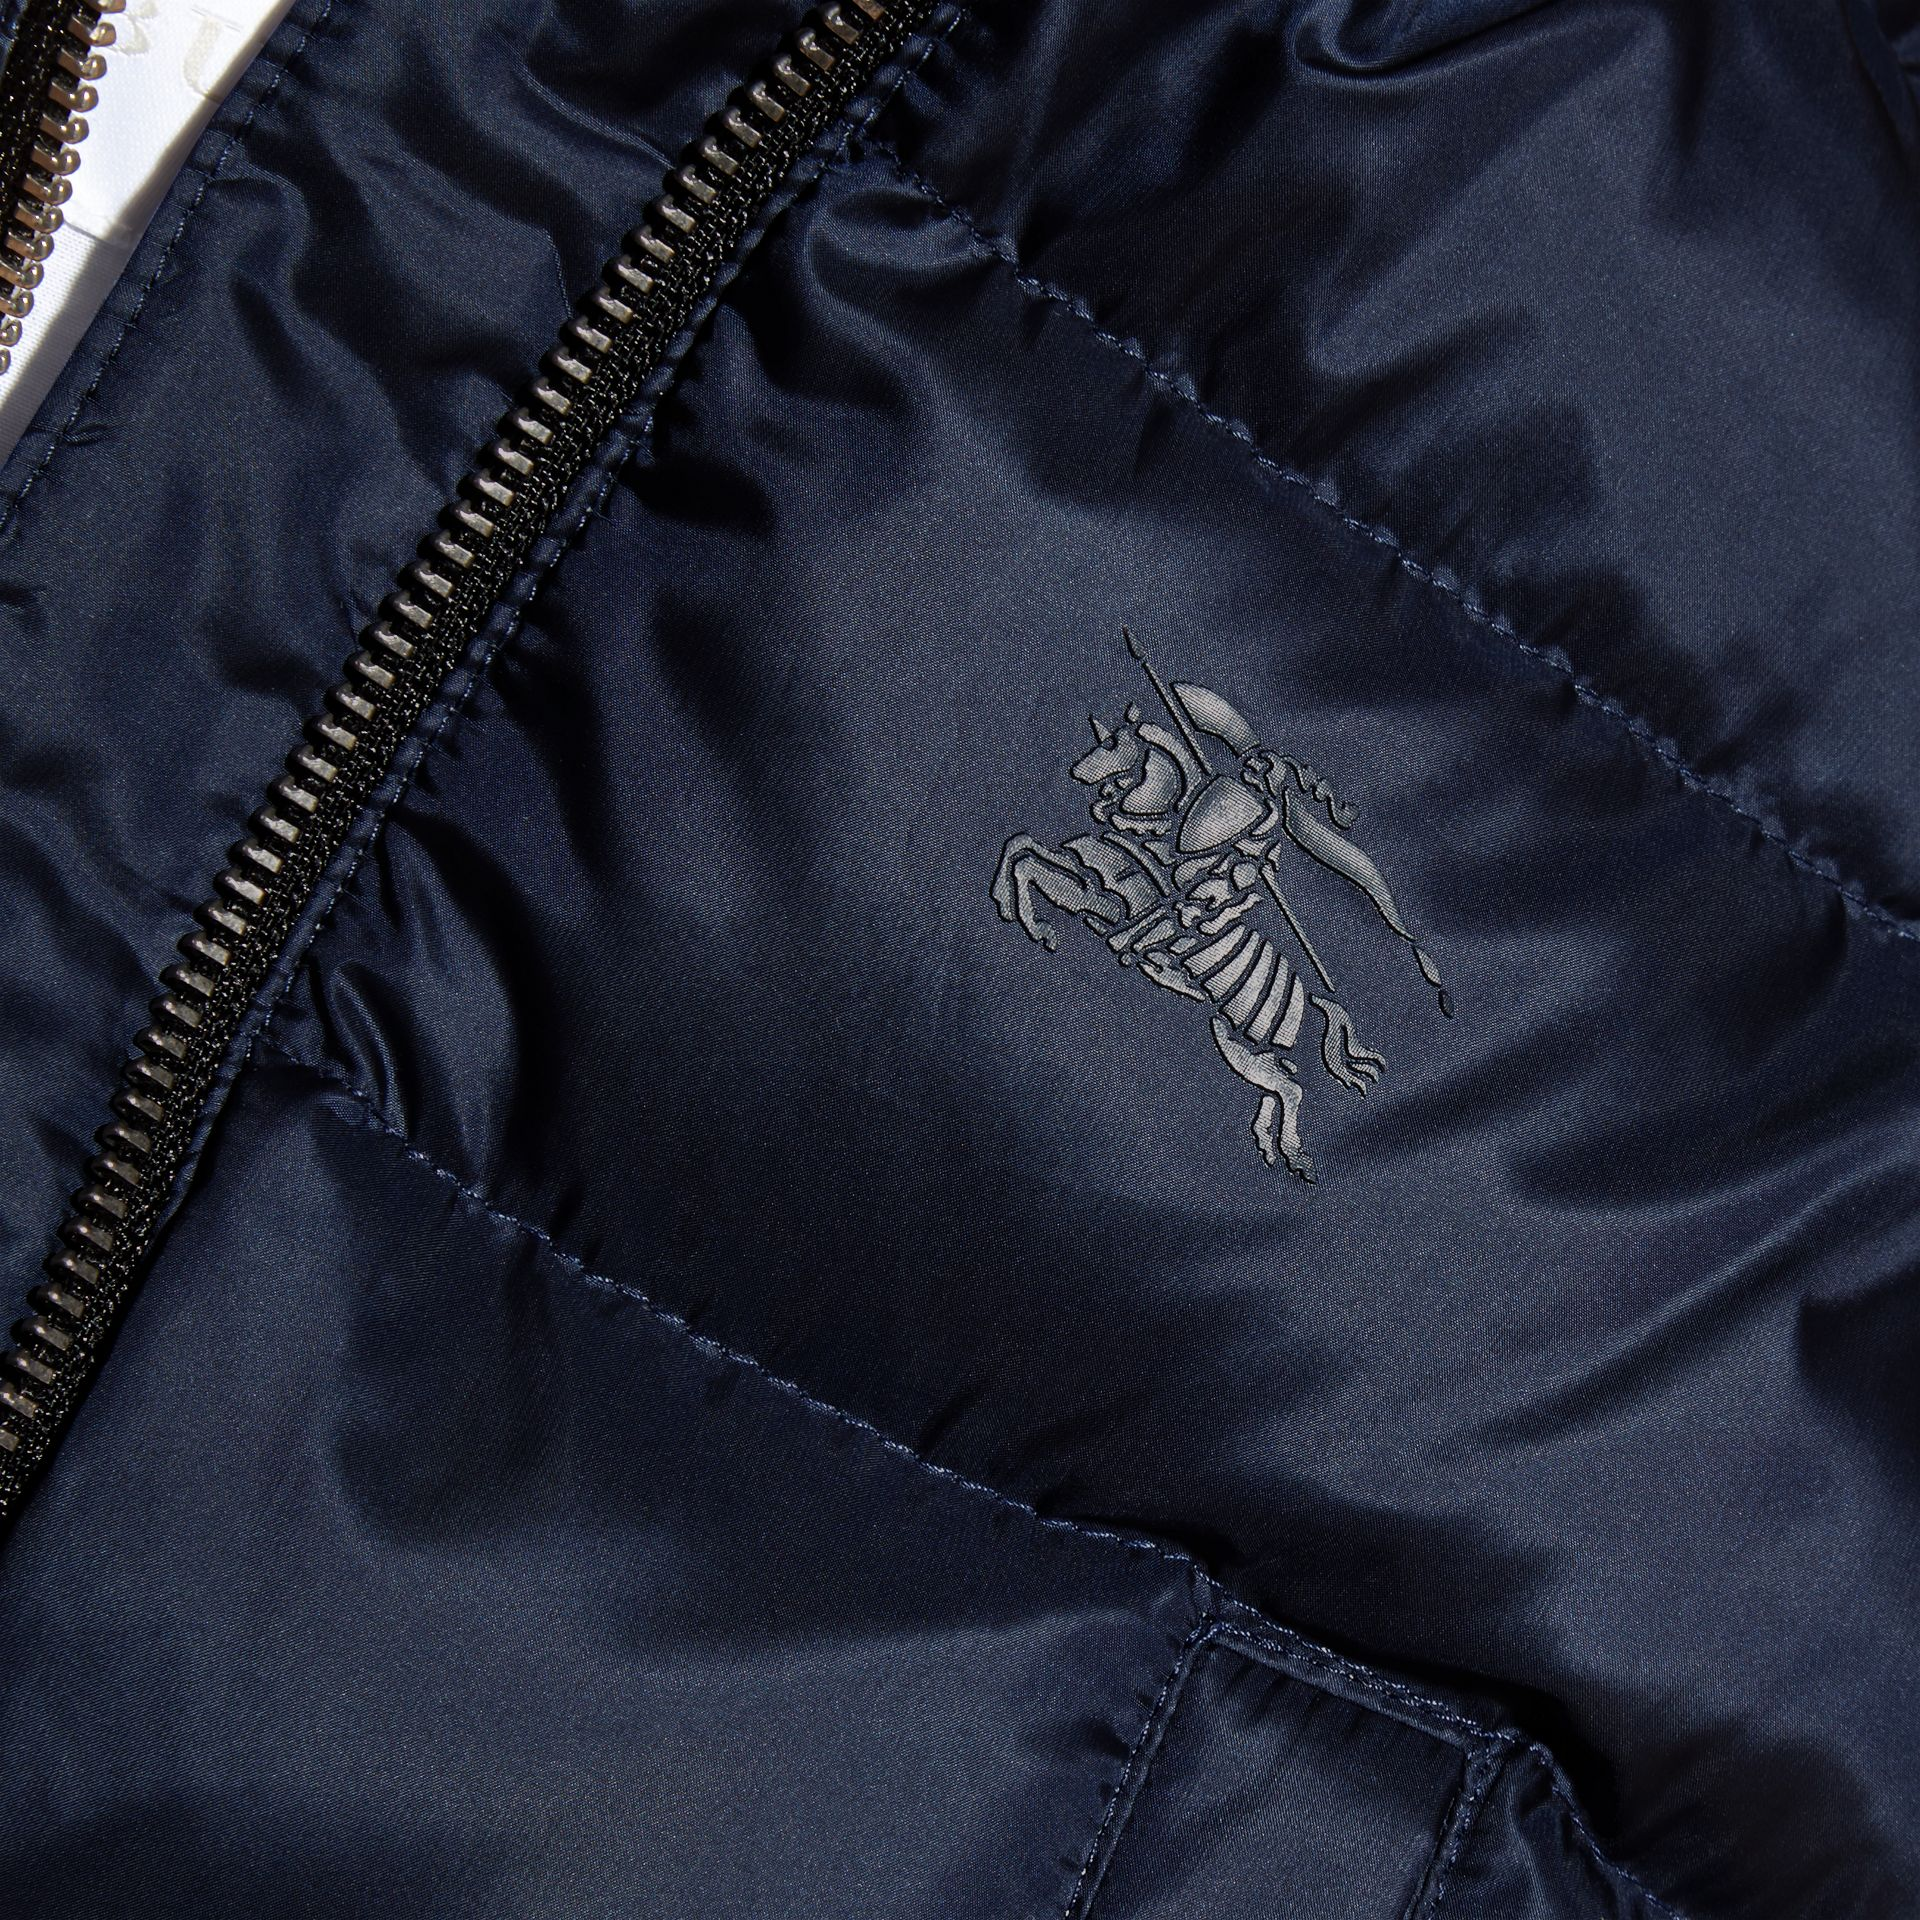 Navy Hooded Down-filled Puffer Jacket with Mittens Navy - gallery image 2